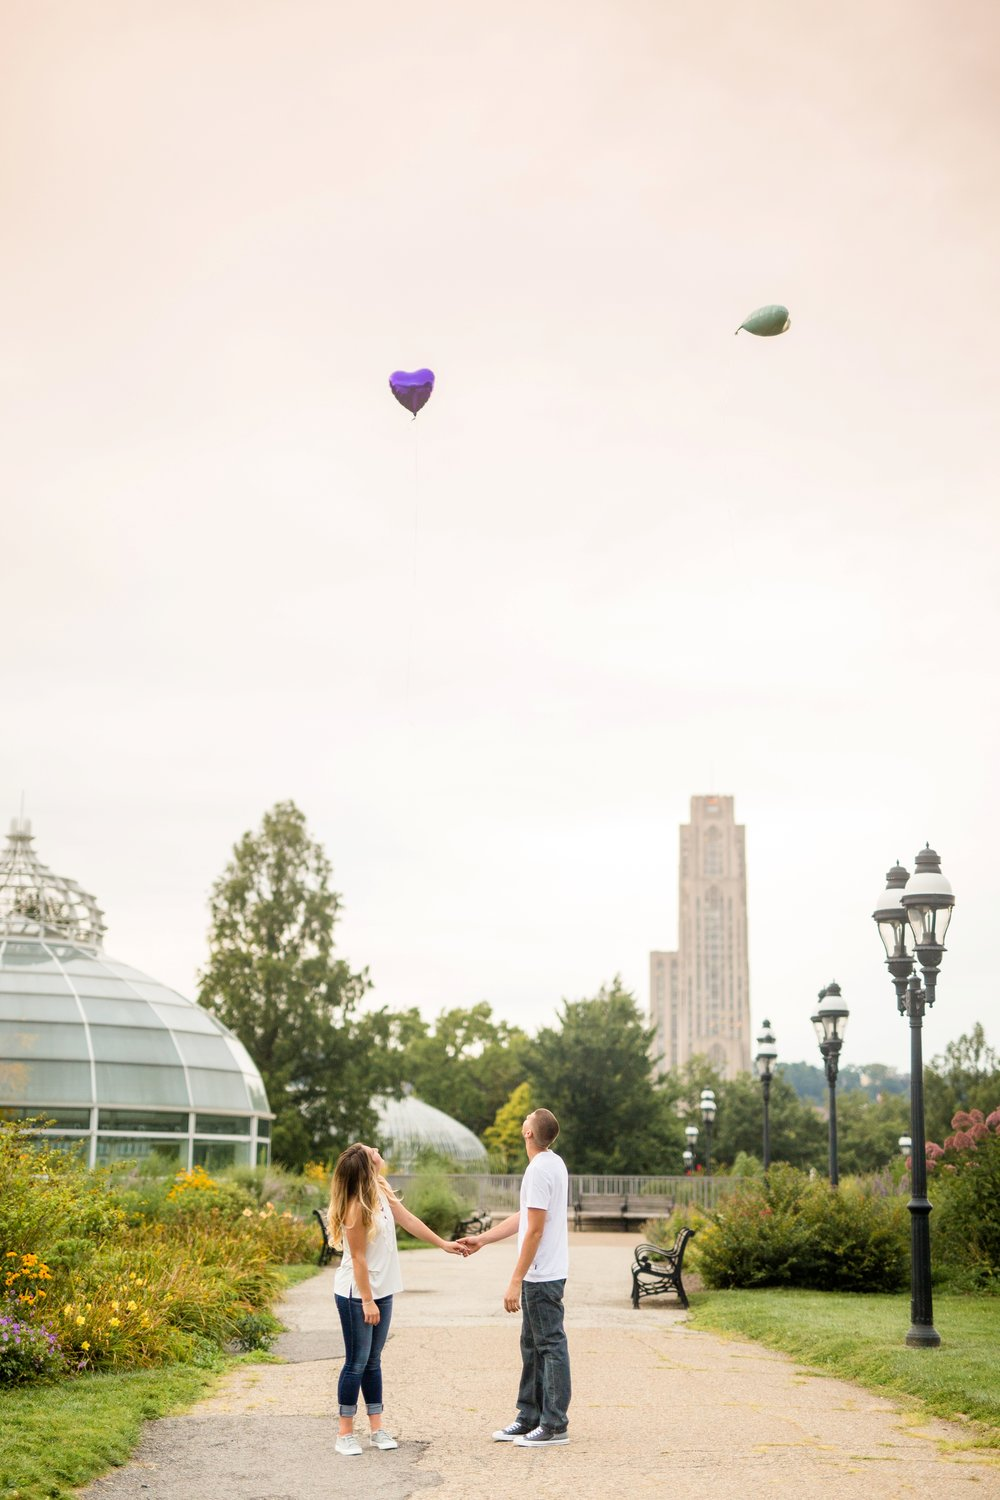 phipps conservatory engagement photos, phipps conservatory engagement photos, phipps conservatory wedding photos, phipps conservatory wedding photographer